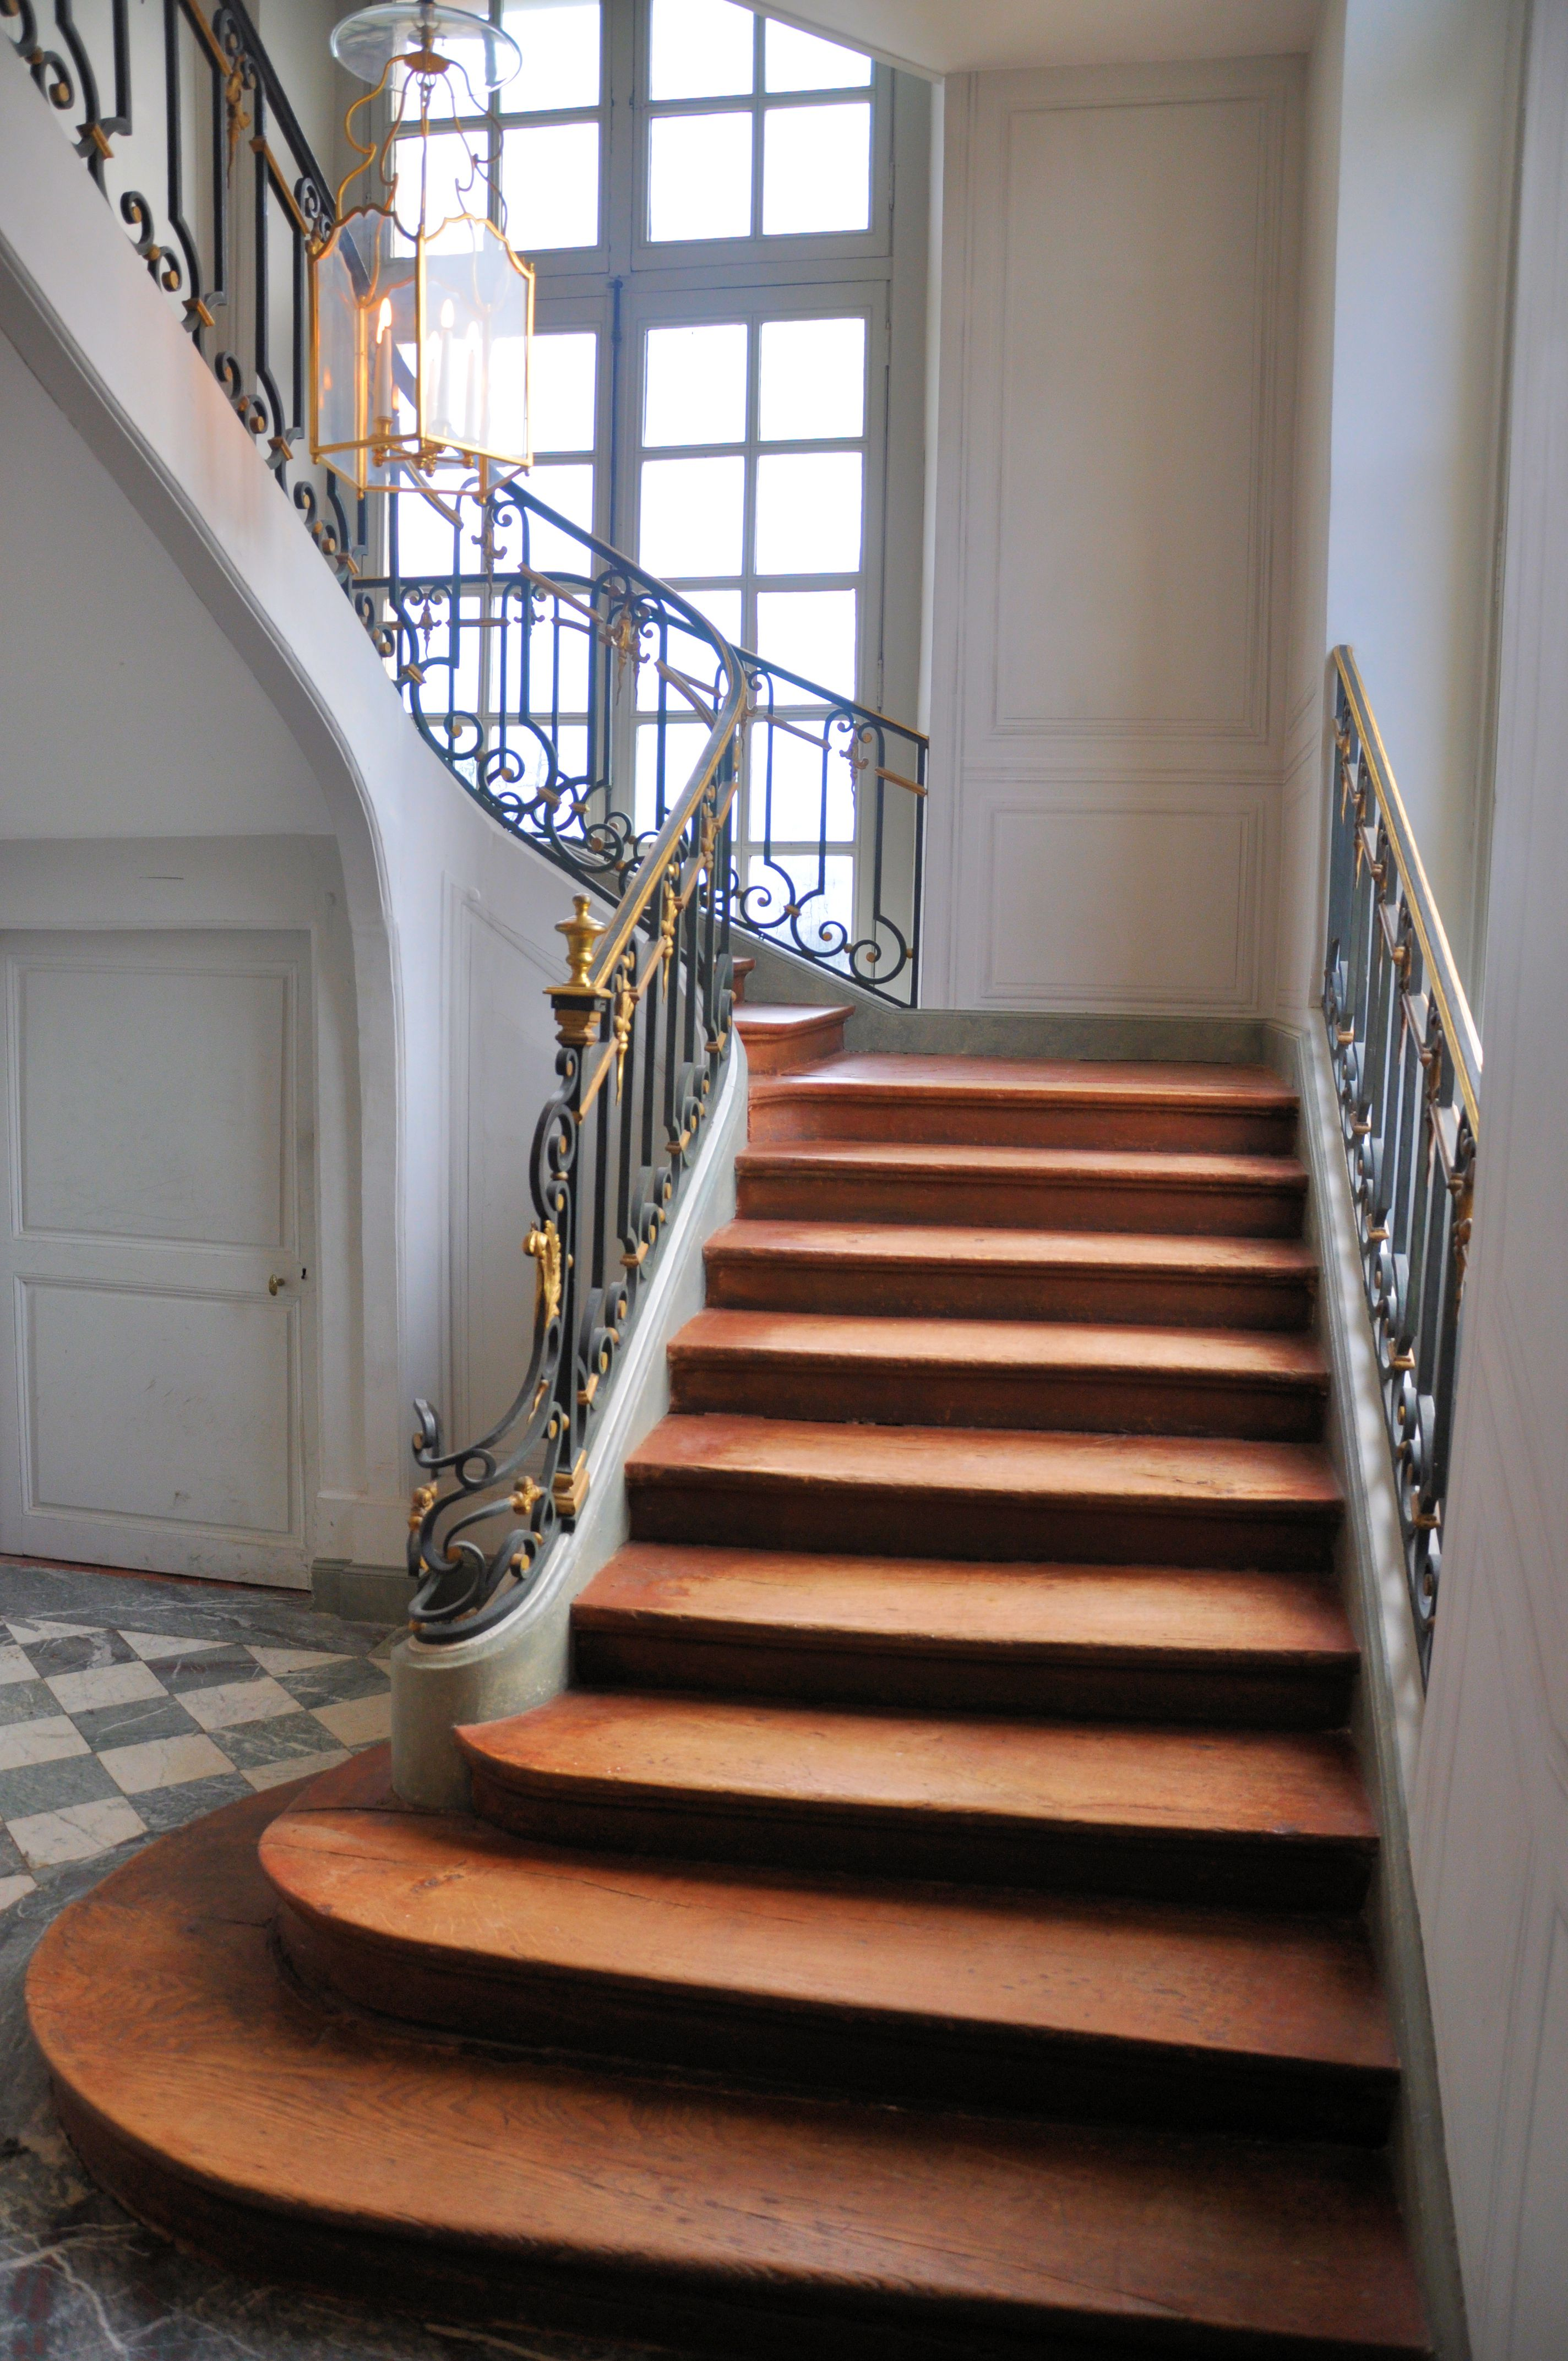 file petit trianon escalier priv jpg wikimedia commons. Black Bedroom Furniture Sets. Home Design Ideas